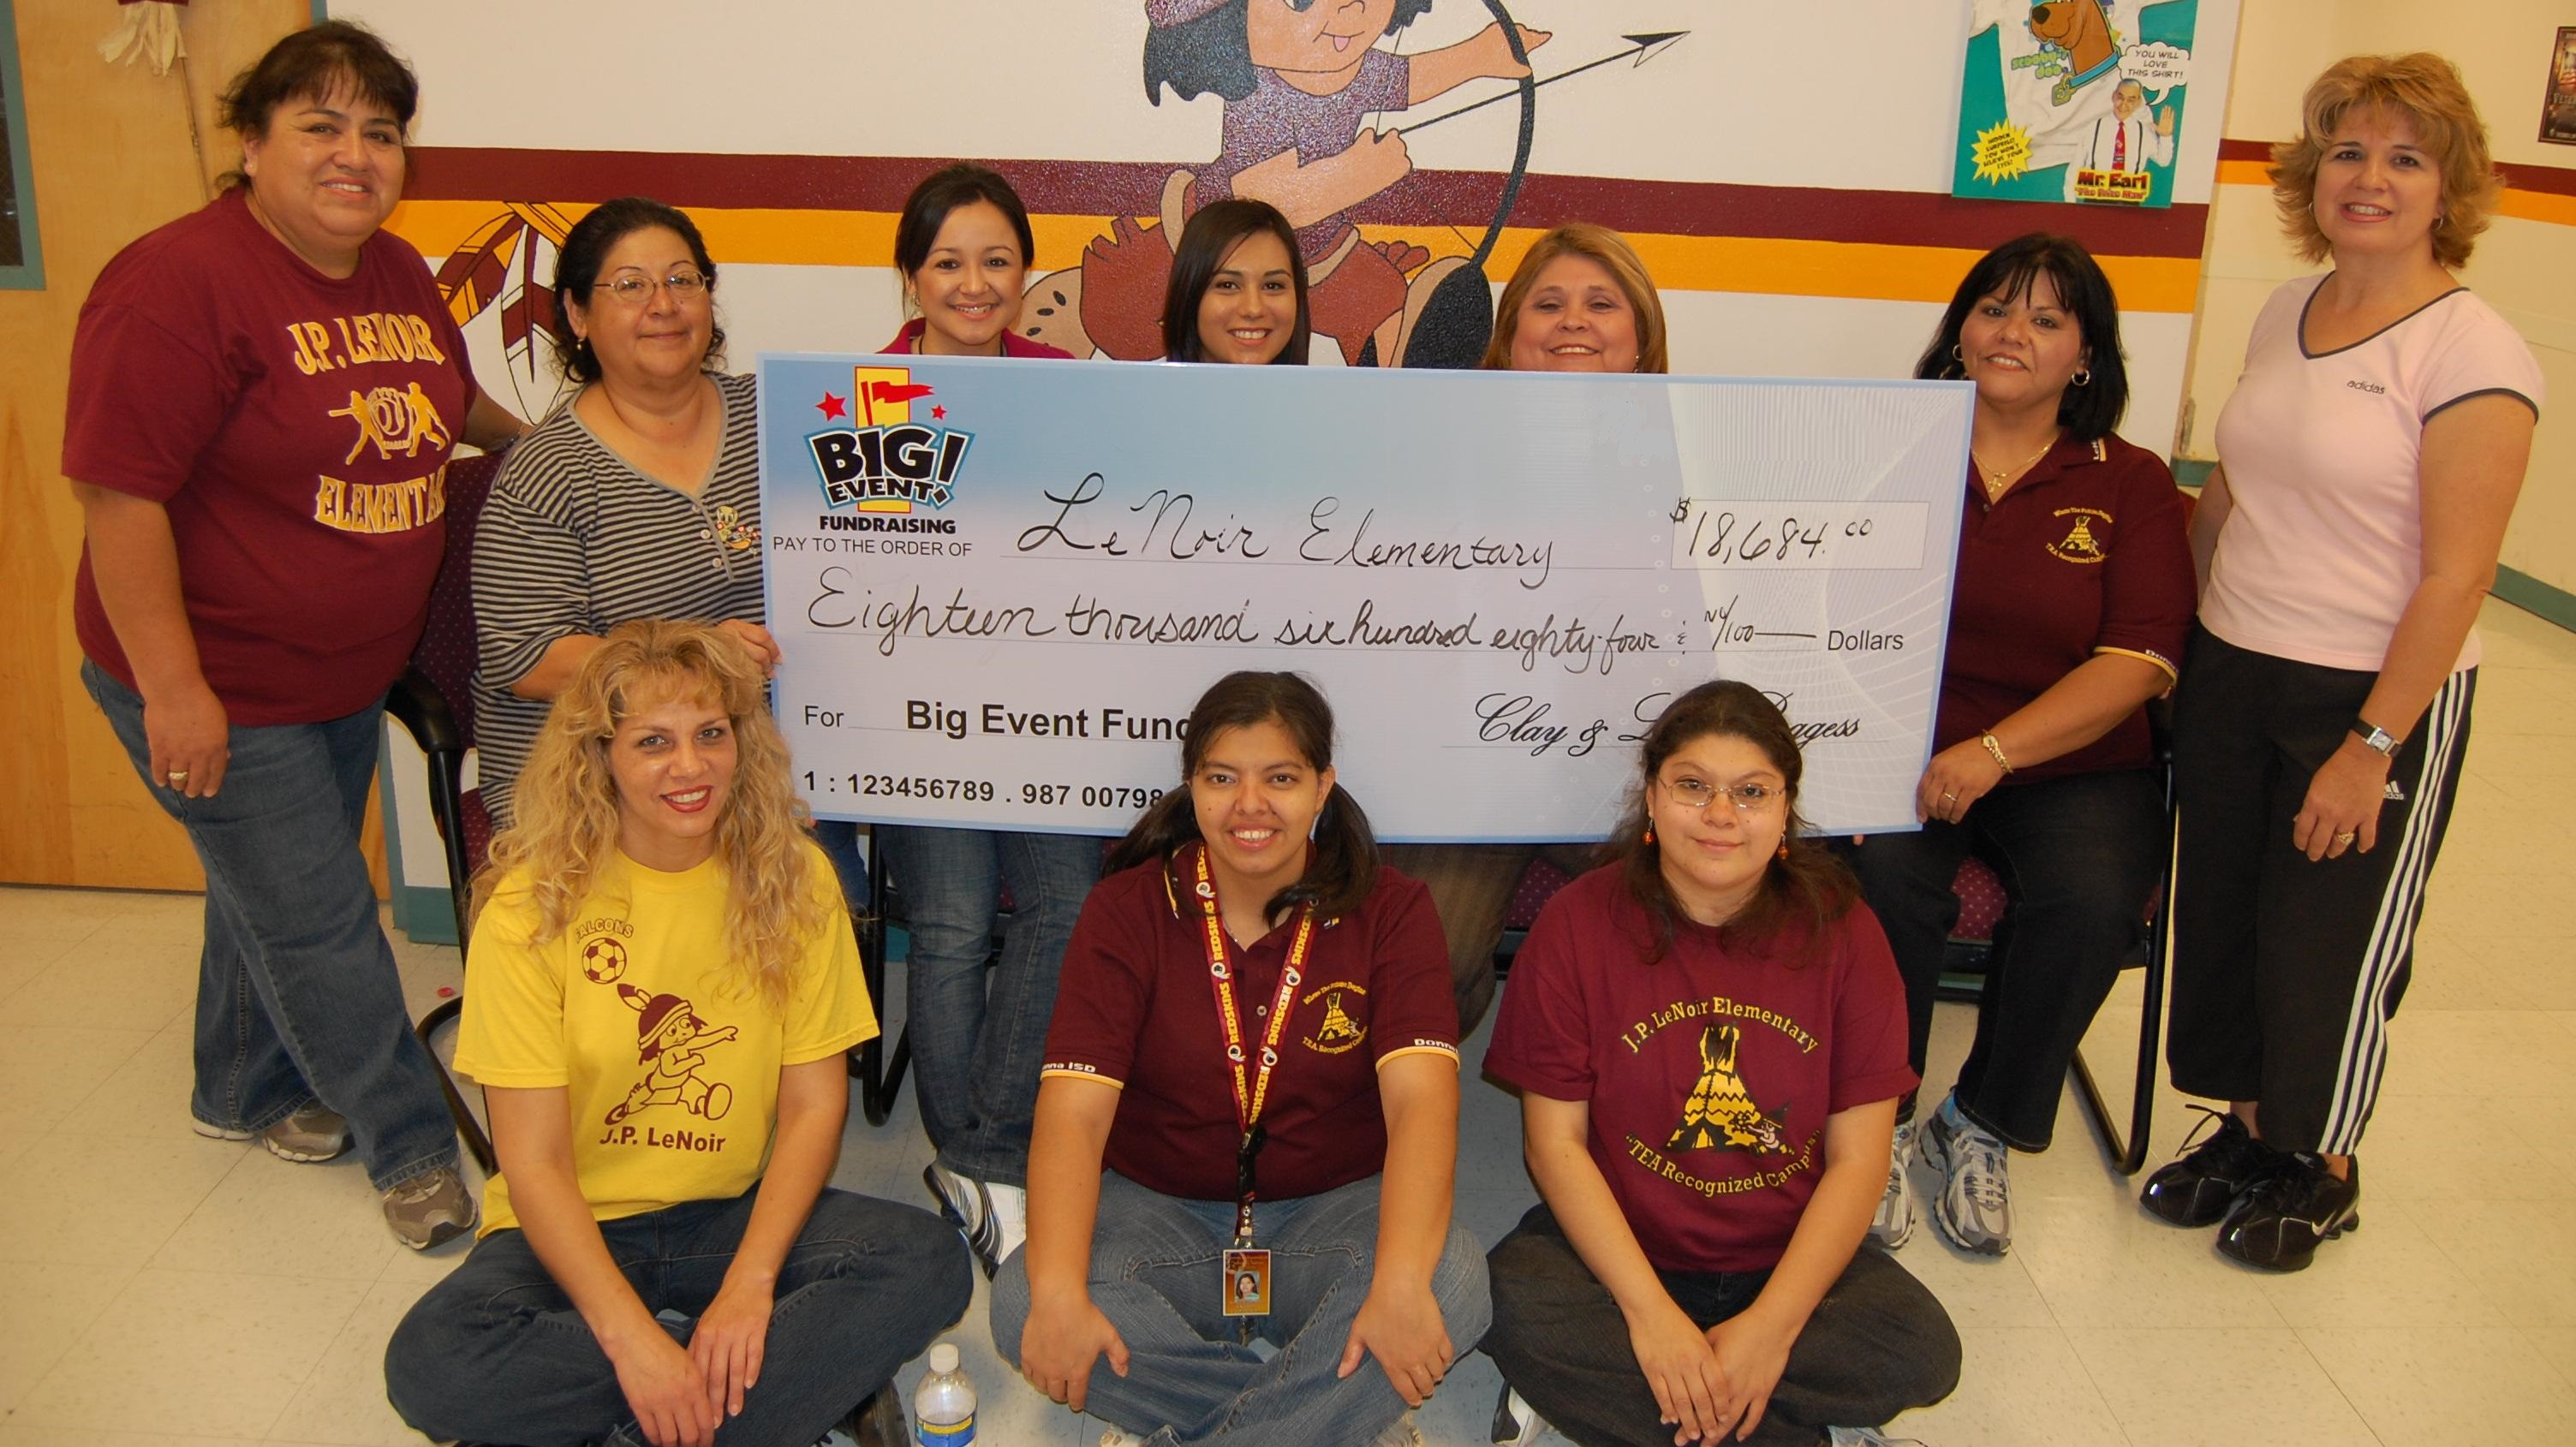 Le Noir Elementary School fundraising team holding check